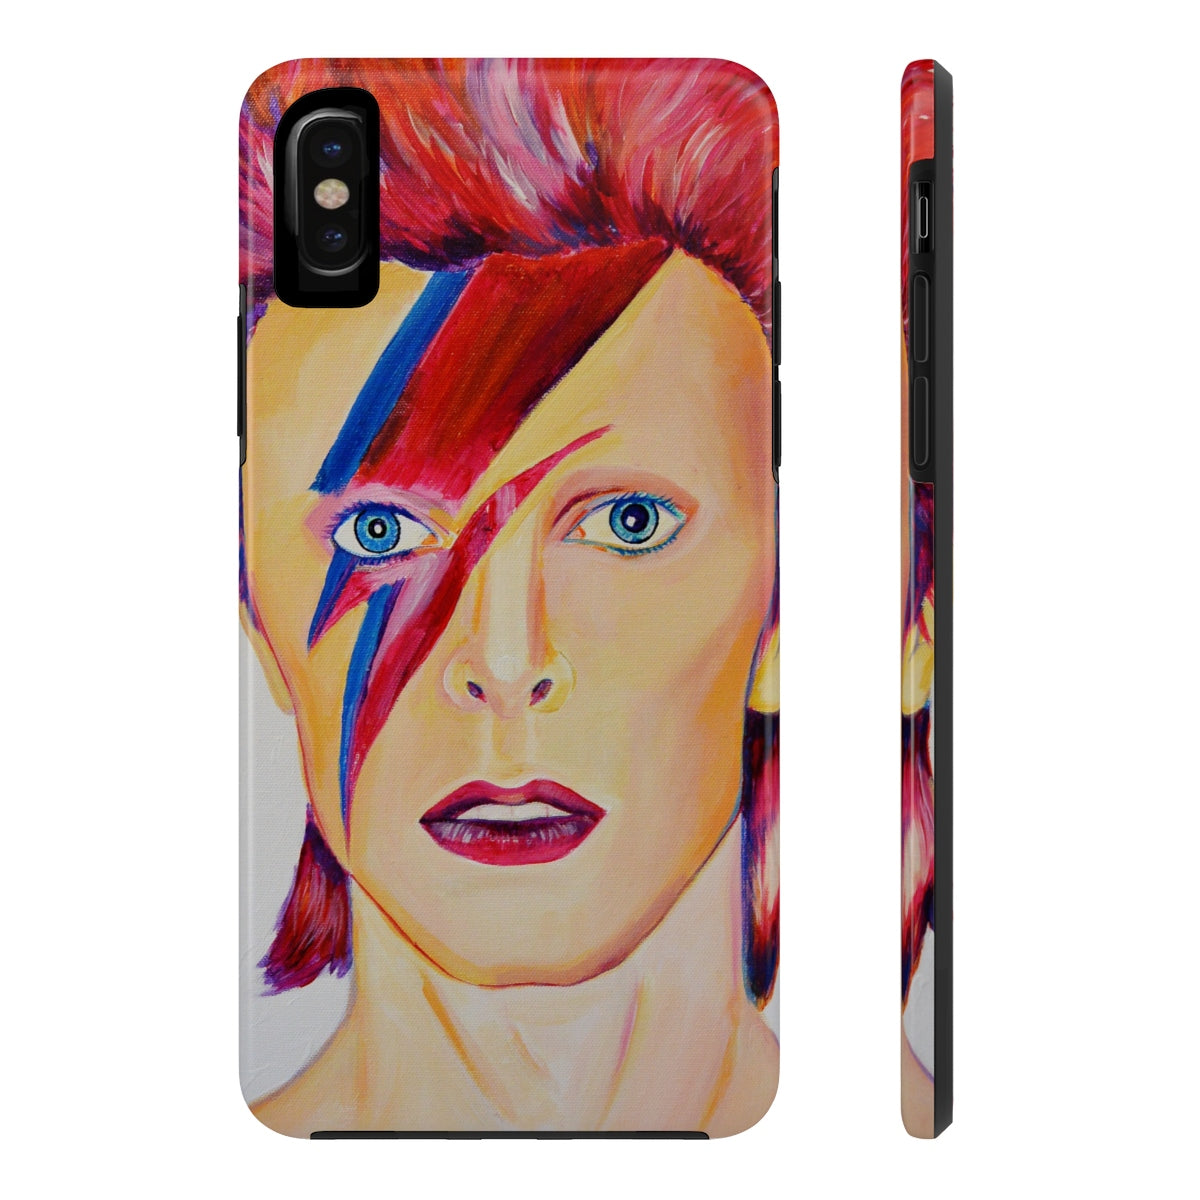 David Tough Phone Cases